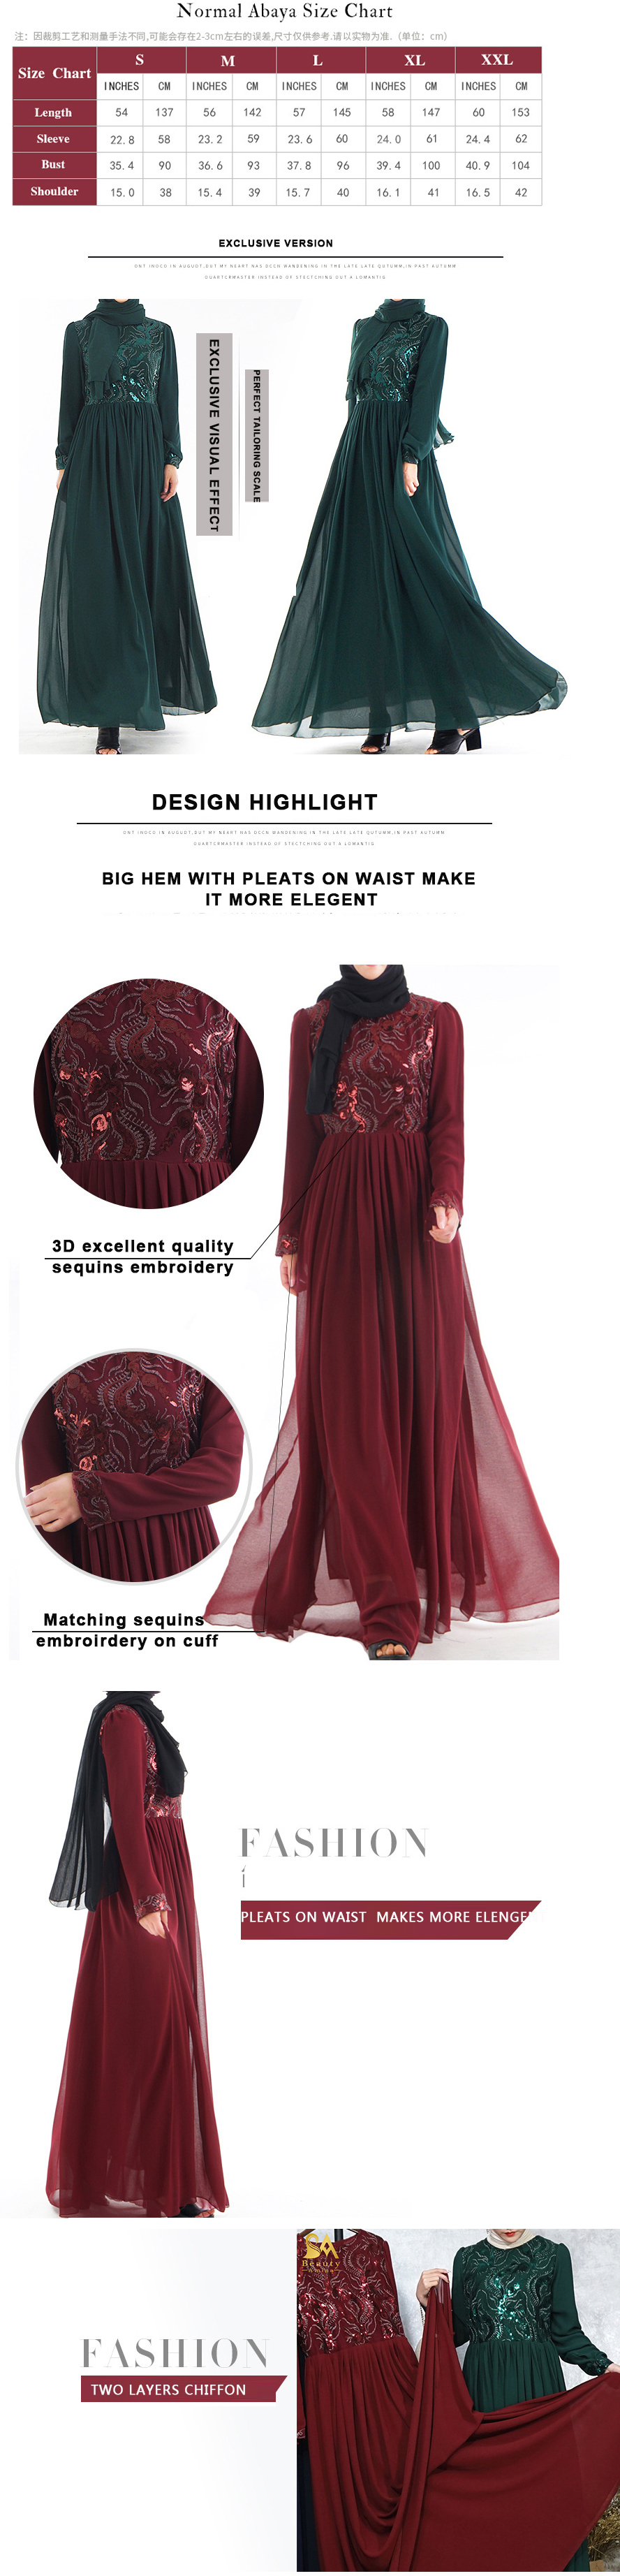 5 colors high quality new Latest designs sequins embroidery women big hem wholesale woman Islamic abaya muslim dress